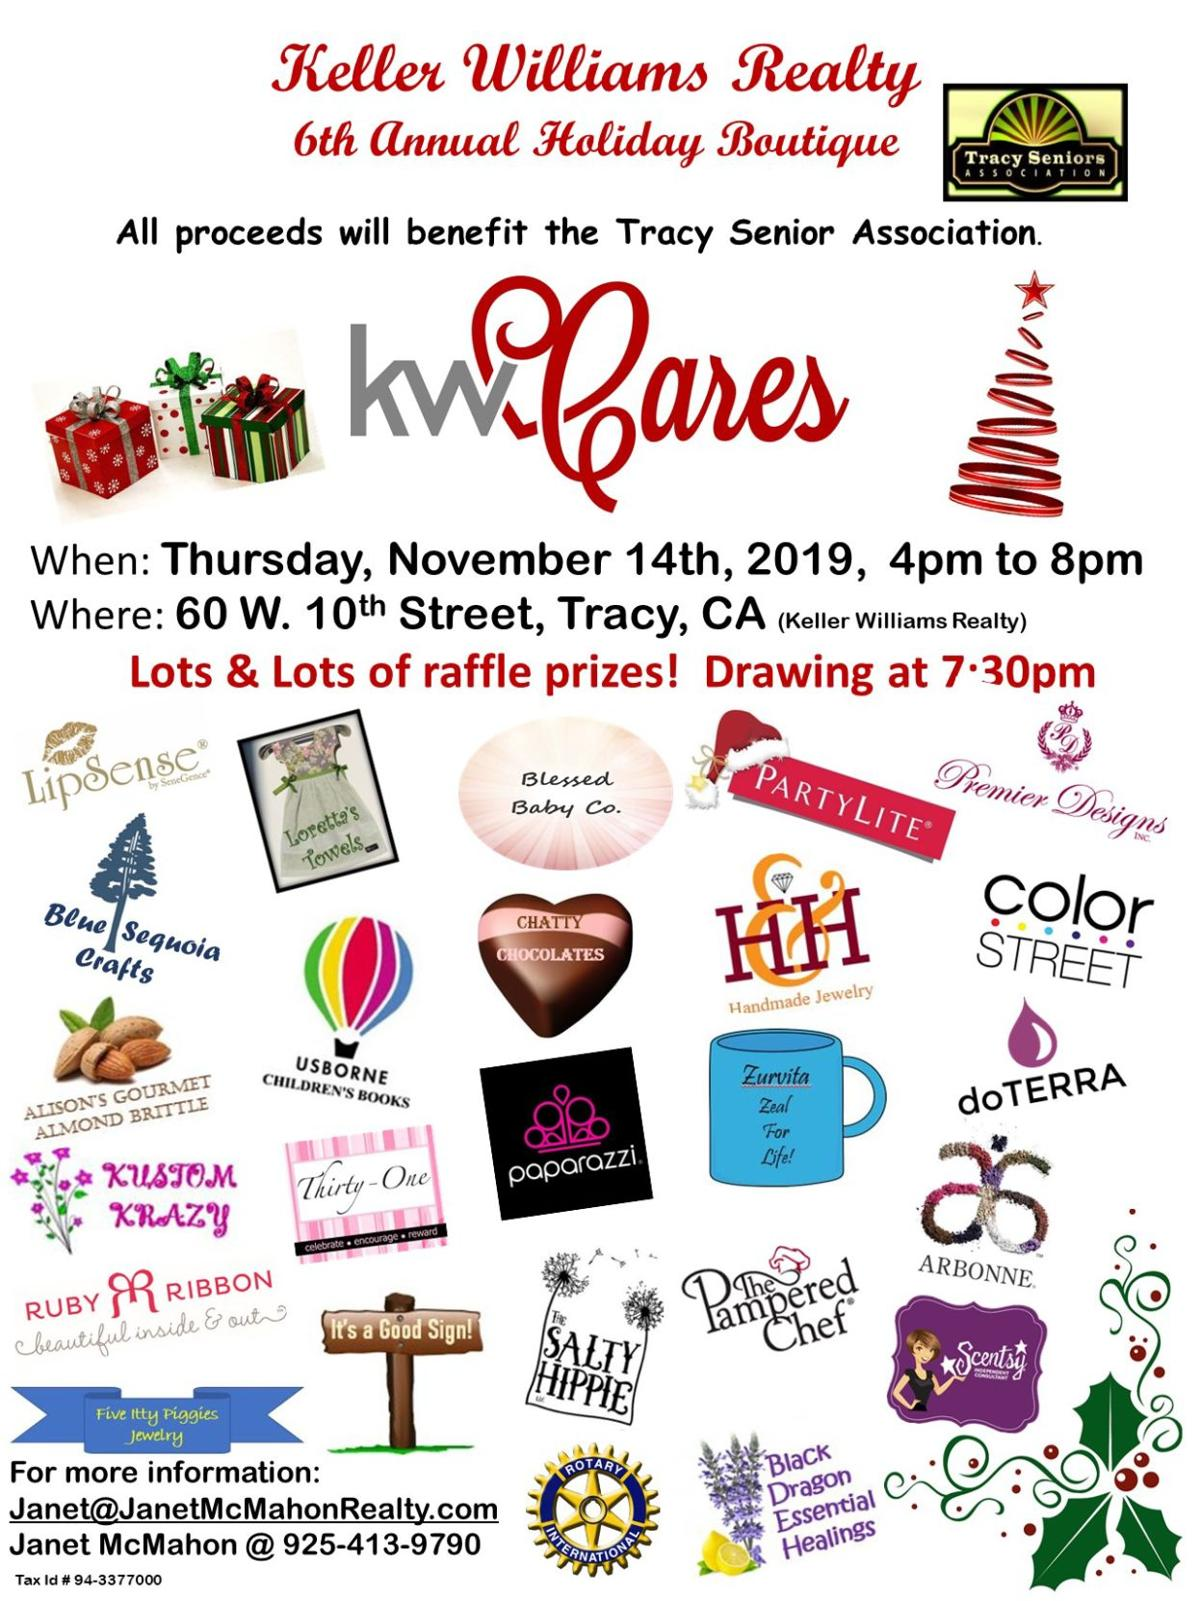 Keller Williams 6th Annual Holiday Boutique Fundraiser